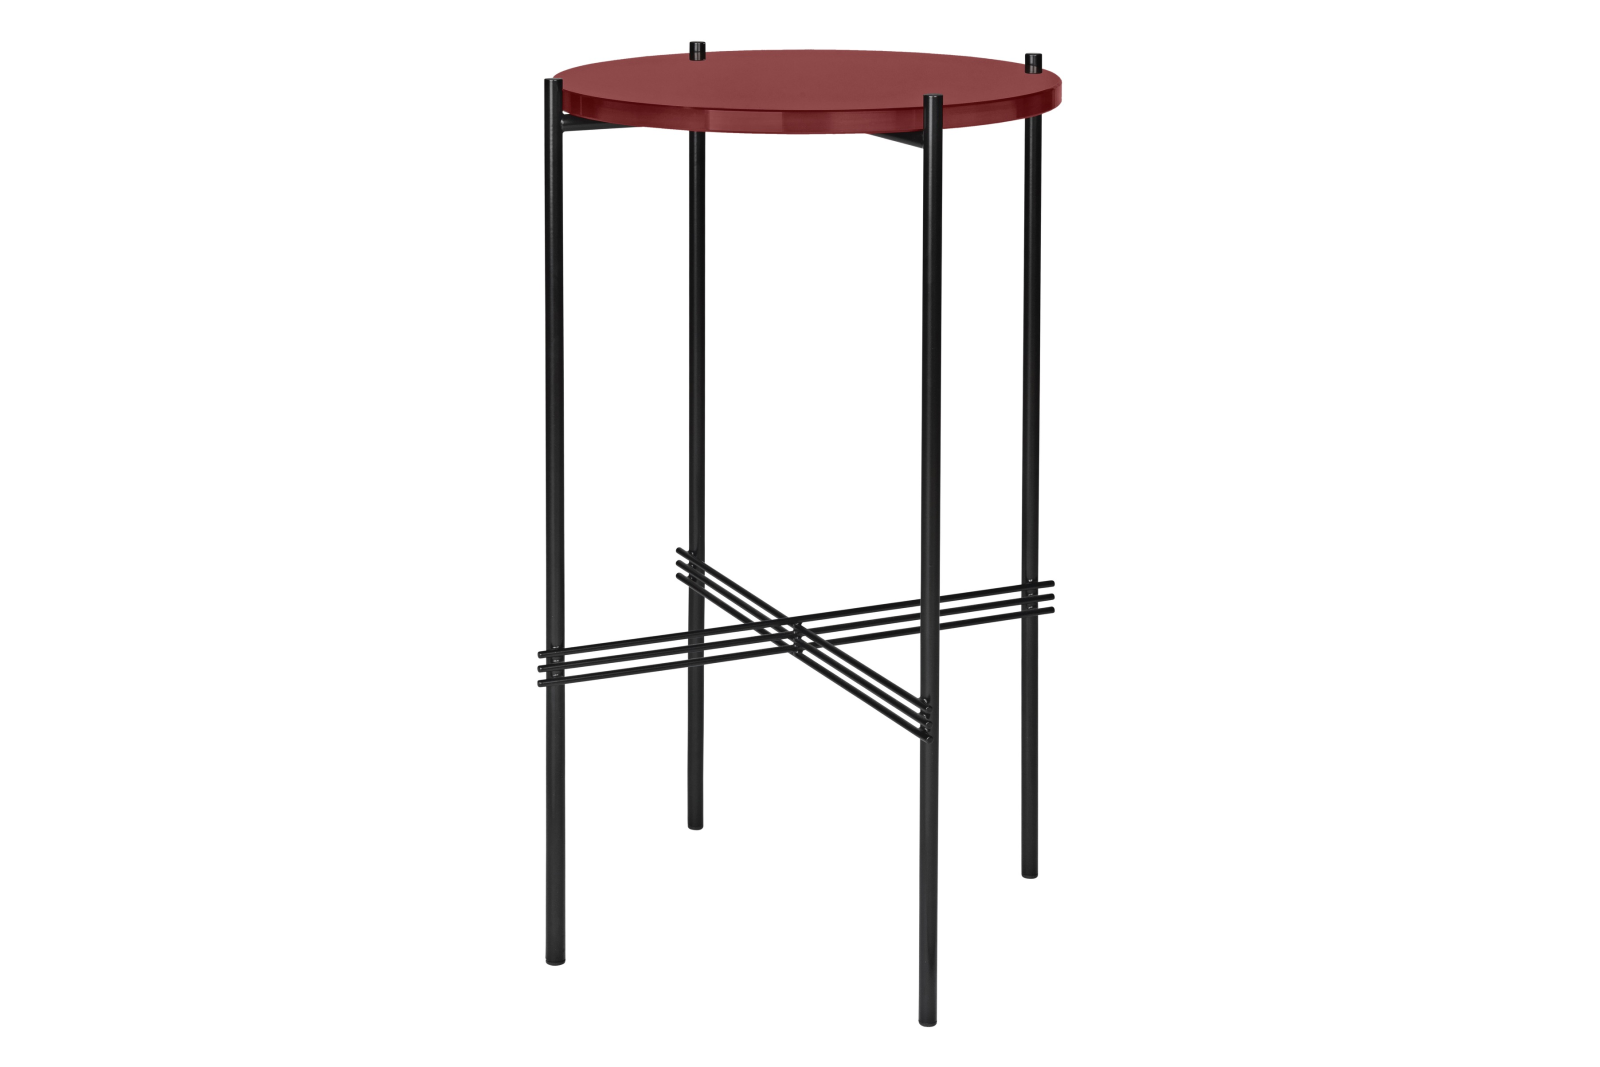 TS Round Console Table with Glass Top Rusty Red Top and Black Frame